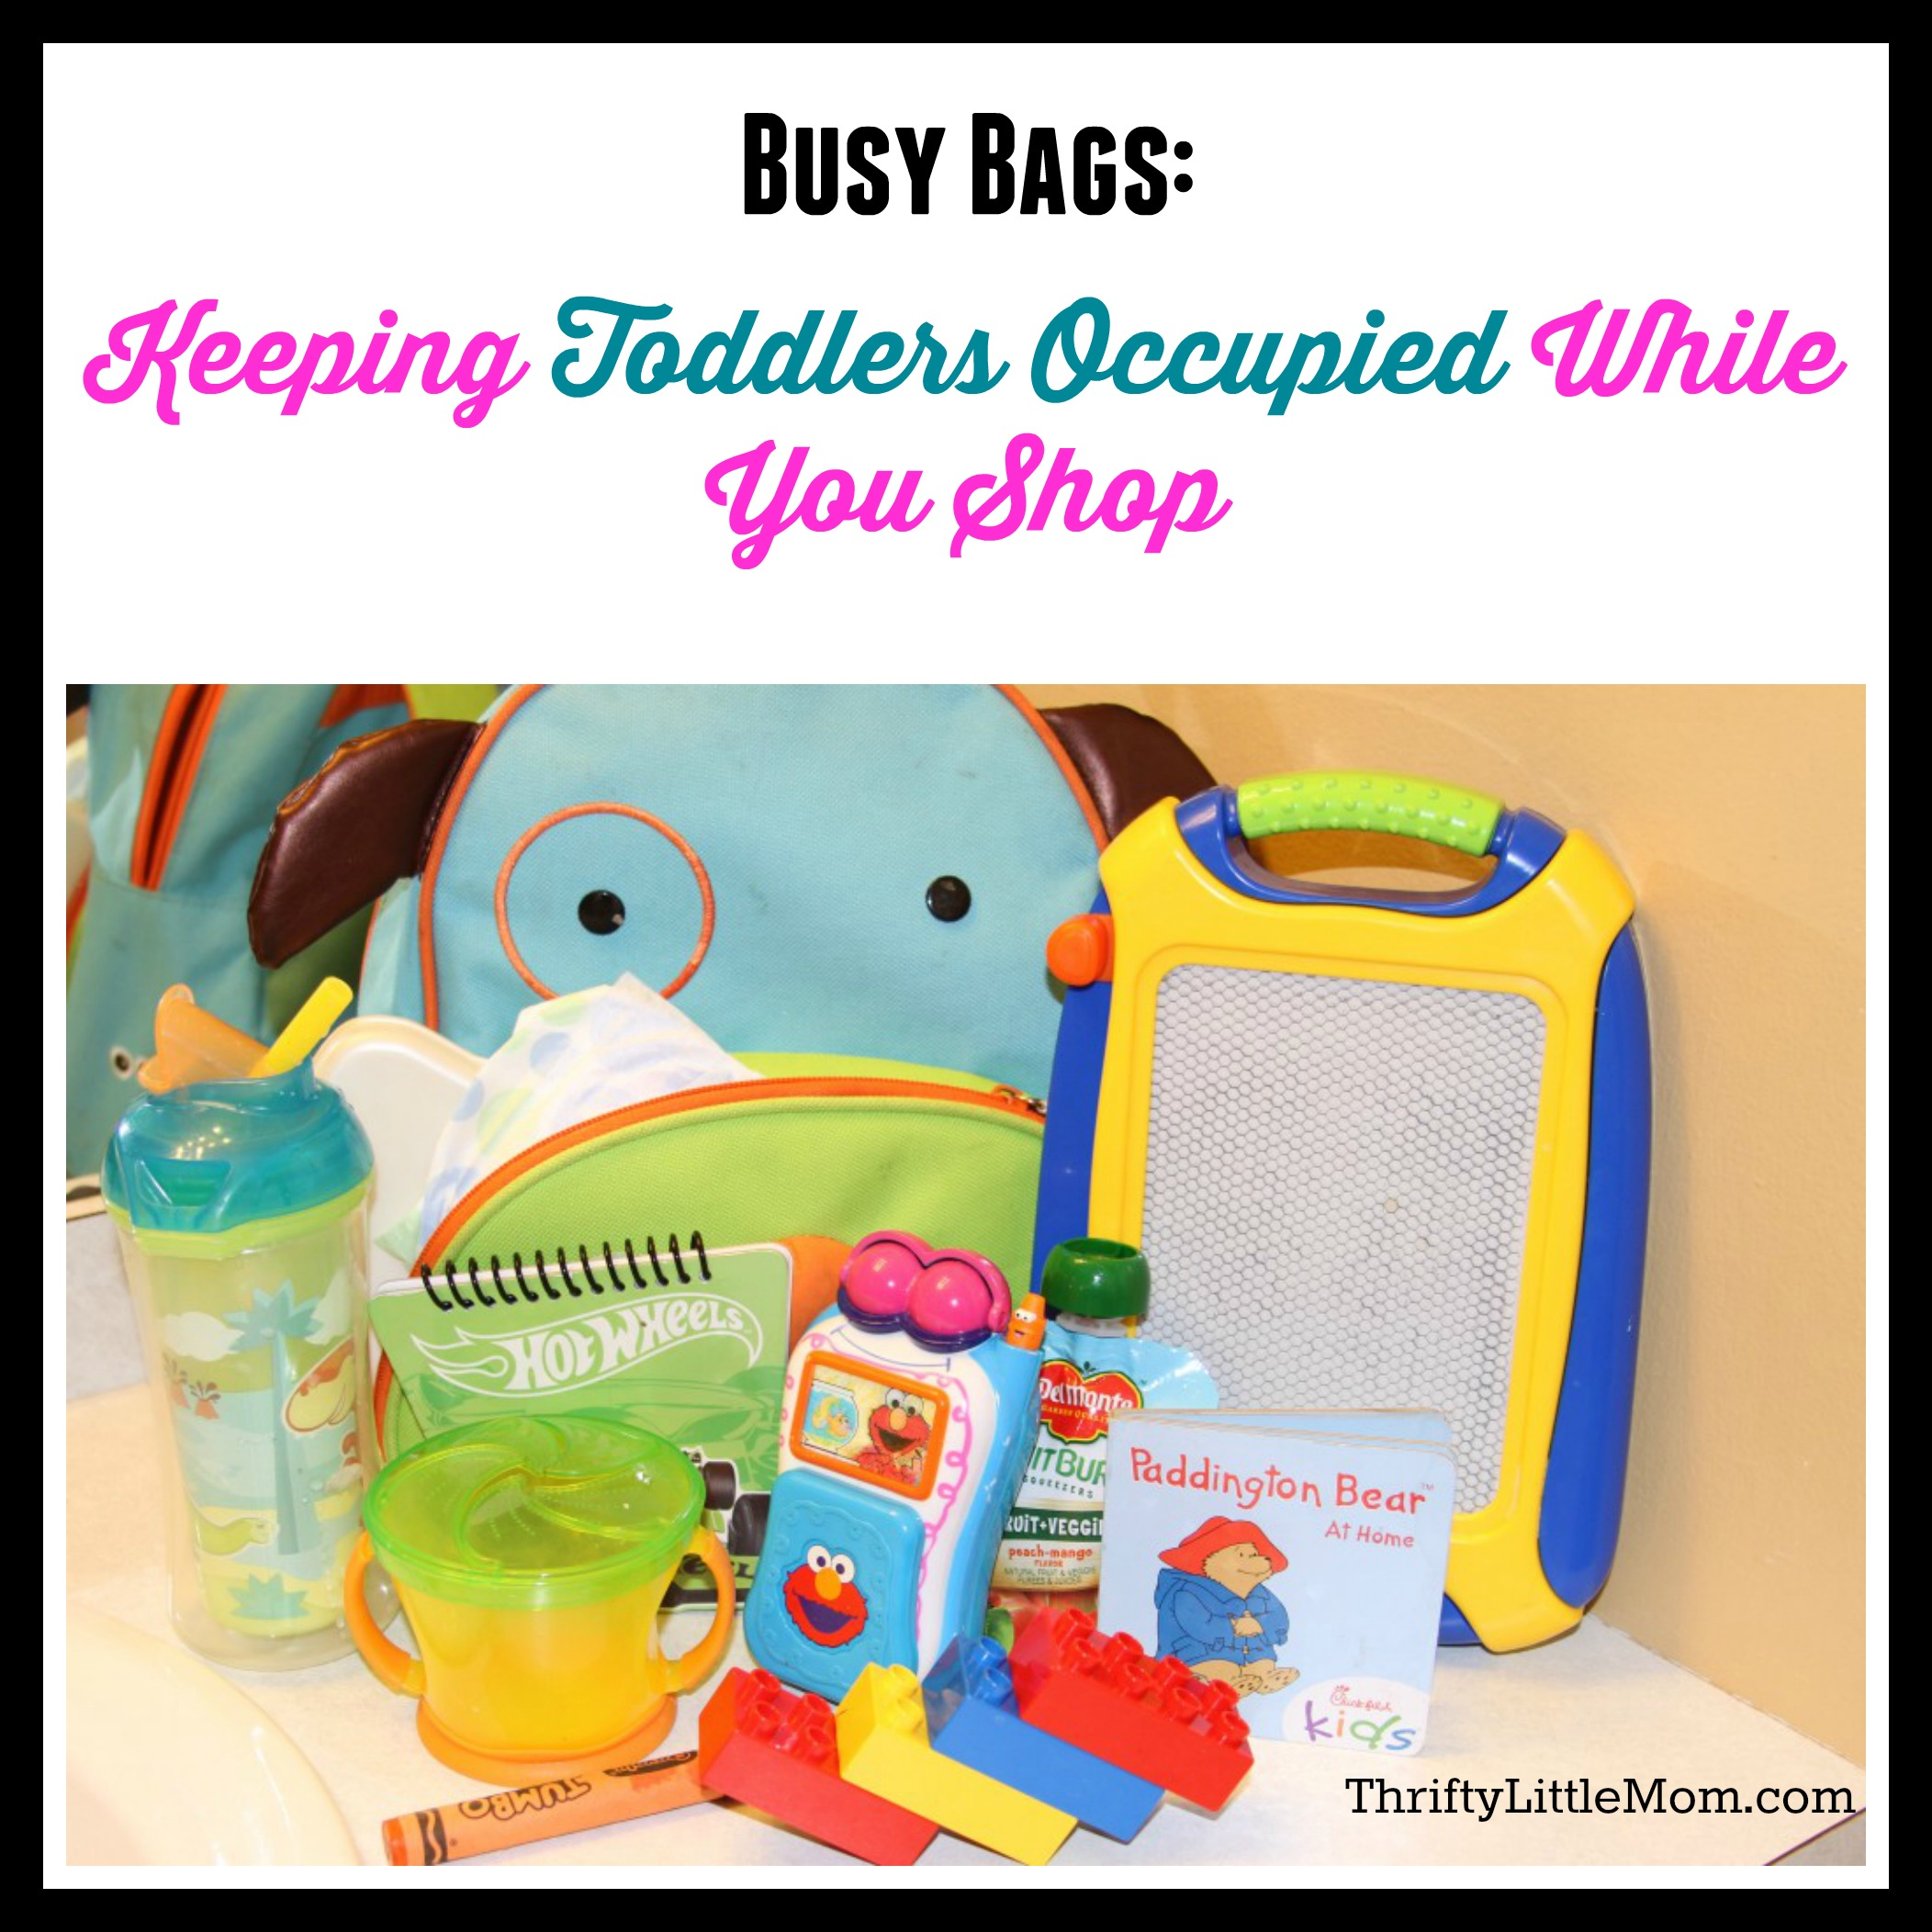 Busy Bags: Keeping Toddlers Occupied While You Shop